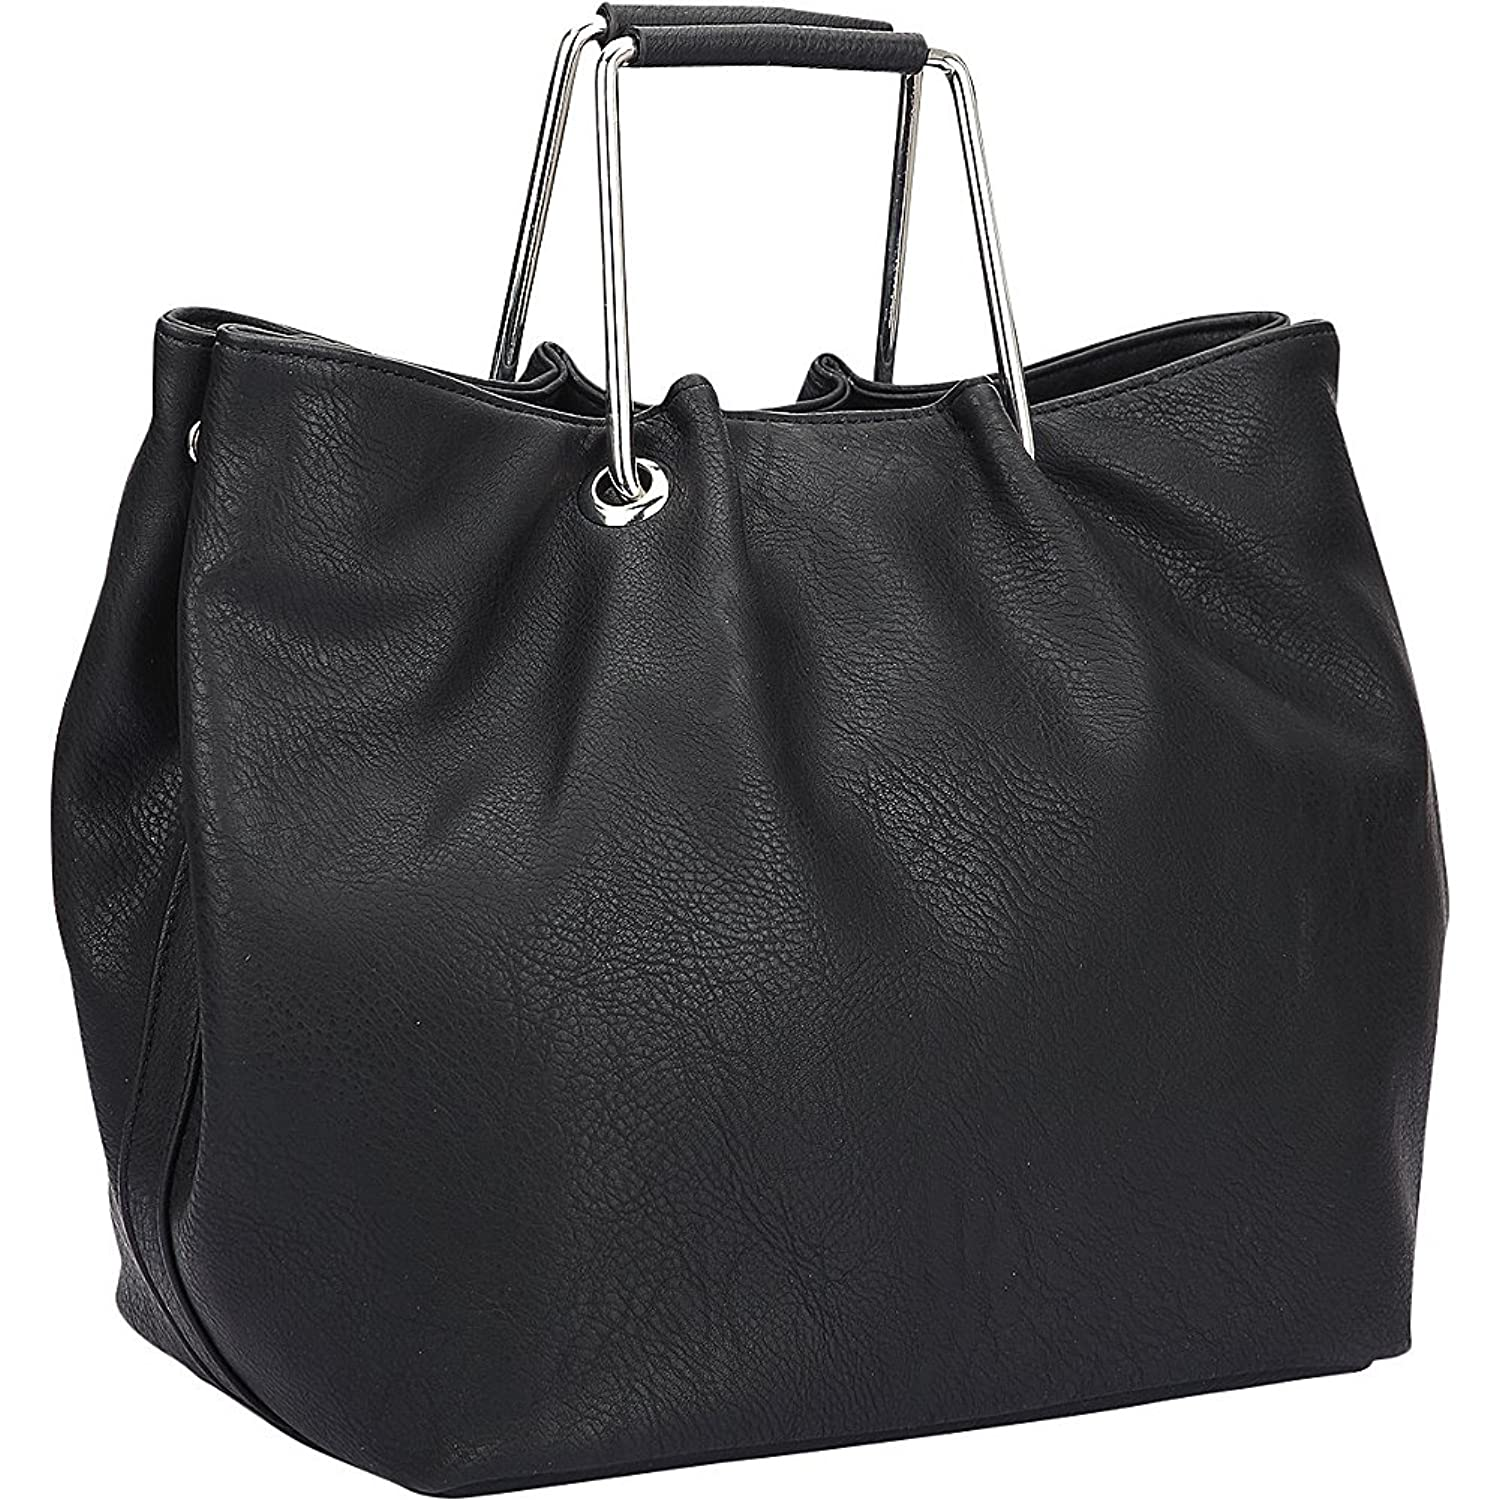 Dasein Square Handle Croc Textured Tote with Removable Shoulder Strap